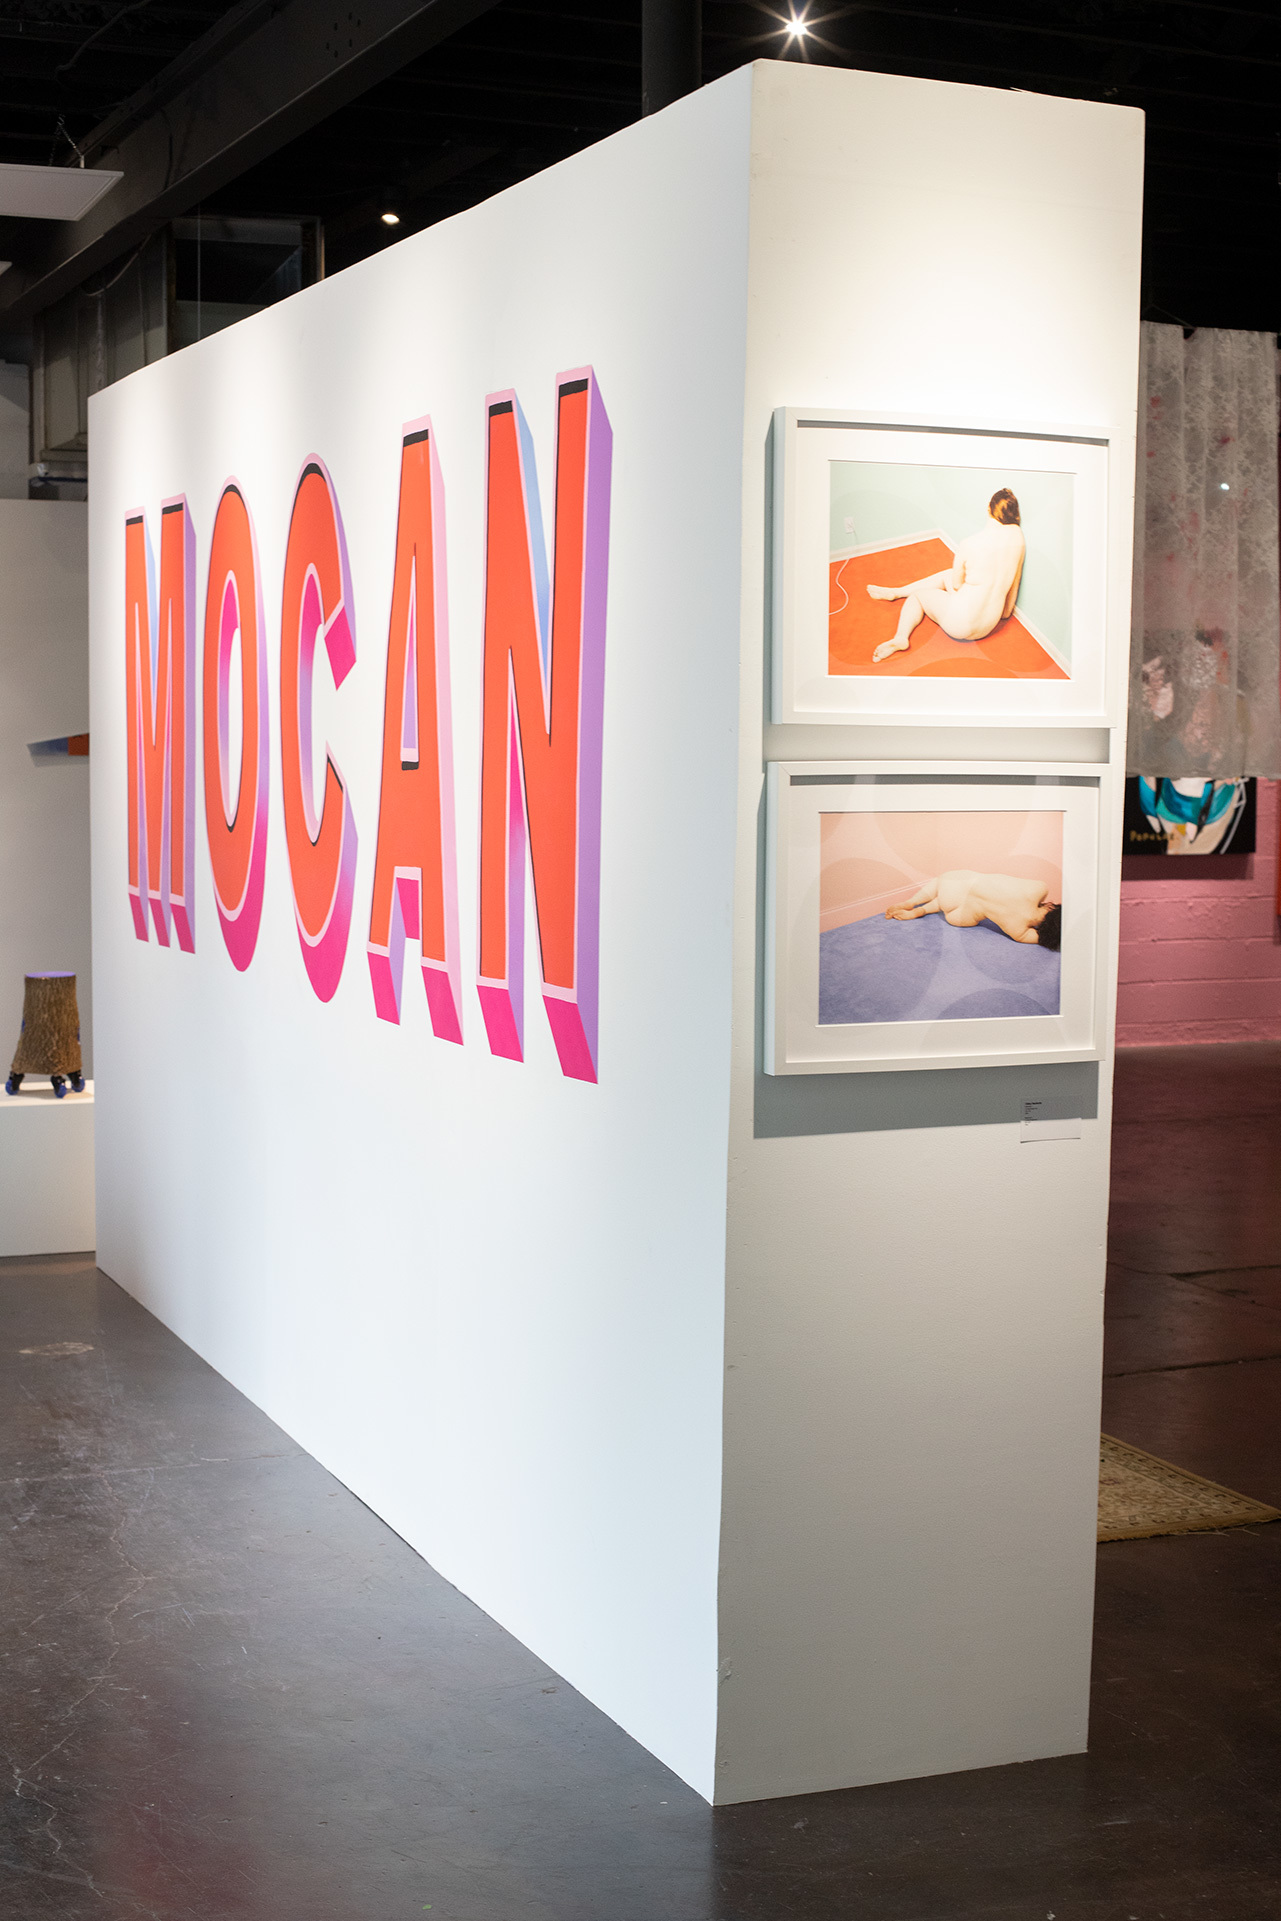 Gallery Visit, MOCAN, May 2021 (feat. Libby Danforth and more)